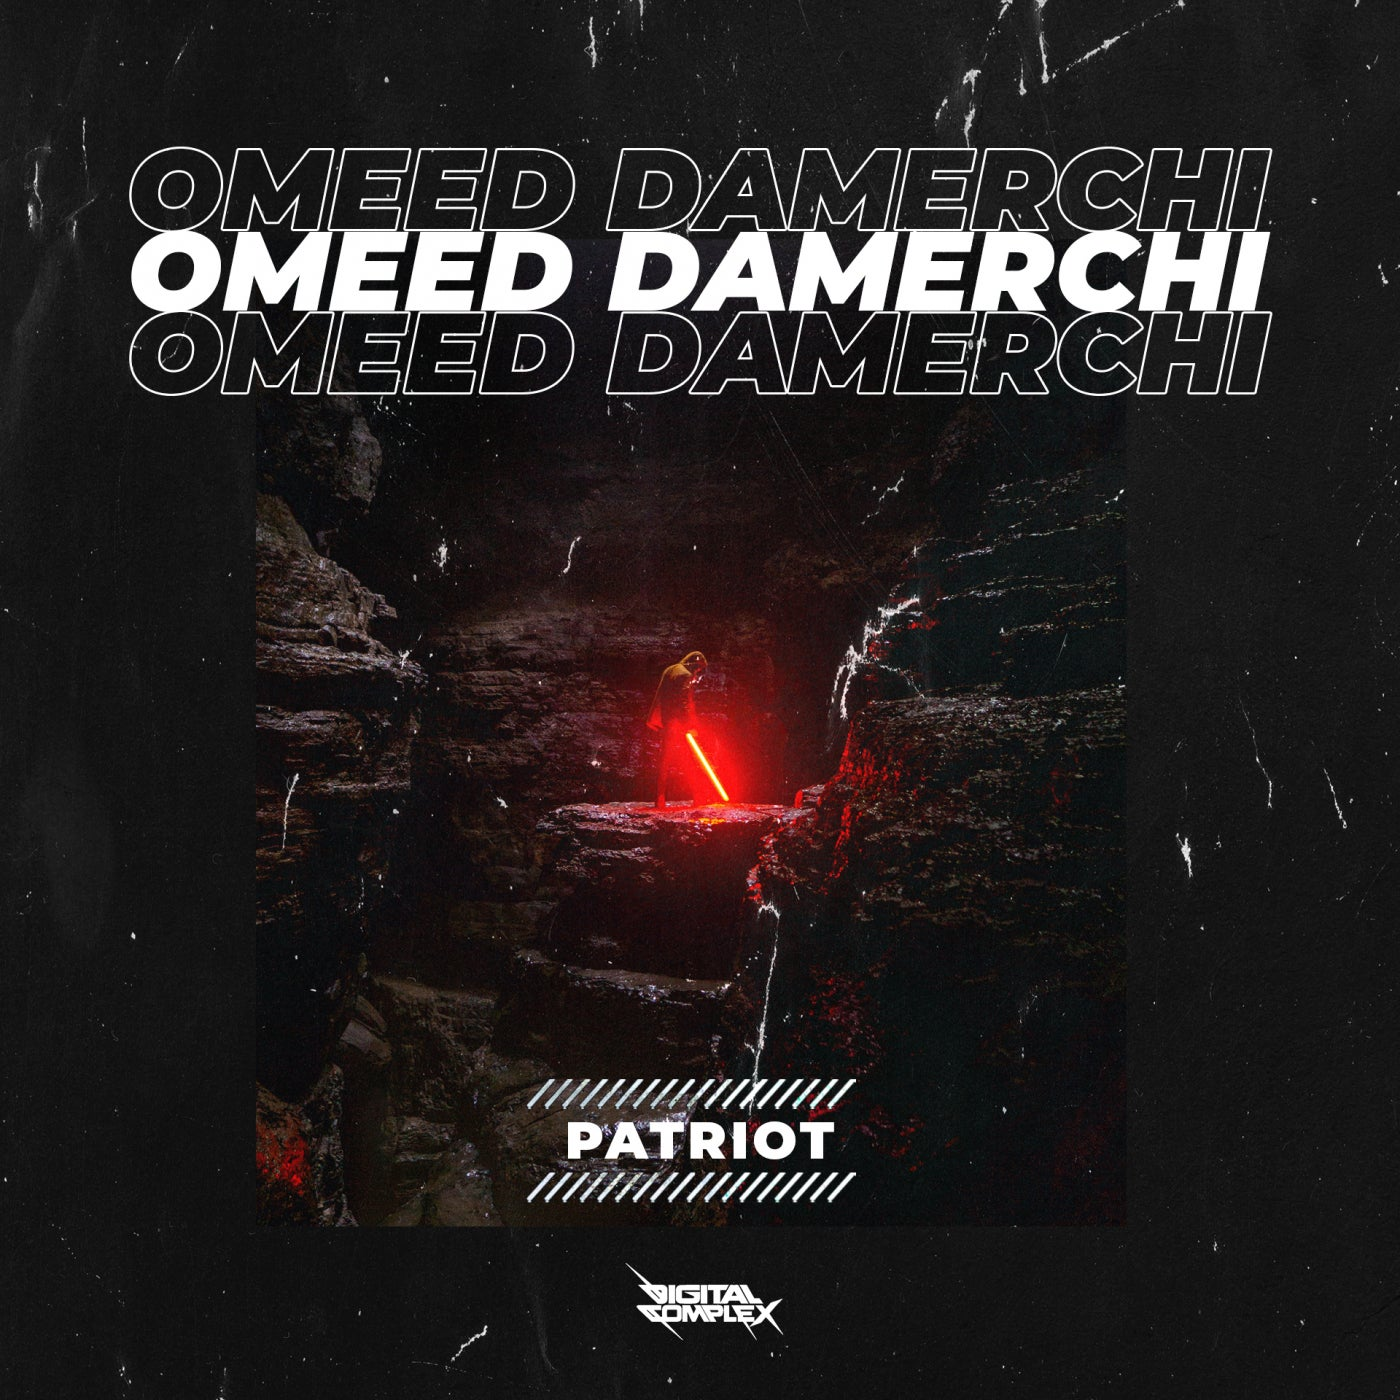 Omeed Damerchi - Patriot [OUT NOW] Image